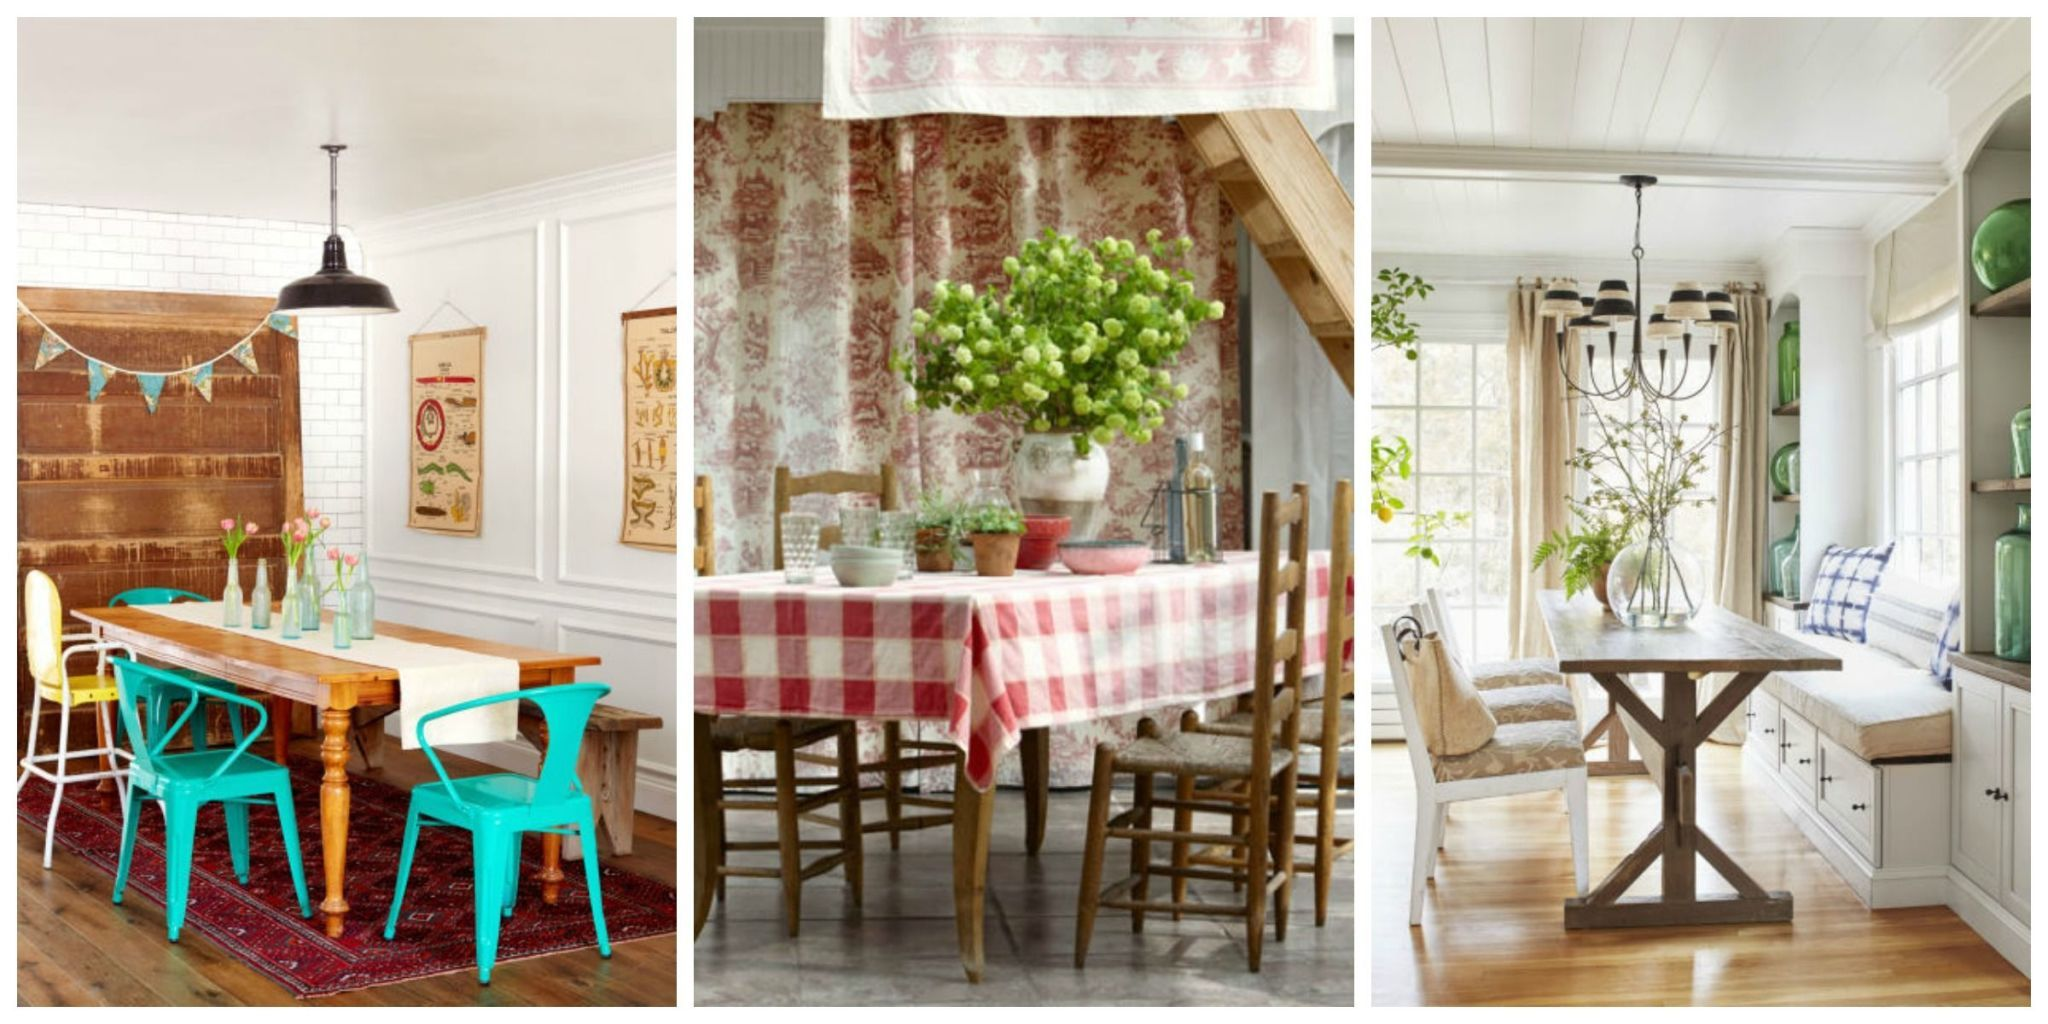 High Quality Our Favorite Ways To Transform Your Dining Room. By Country Living Staff